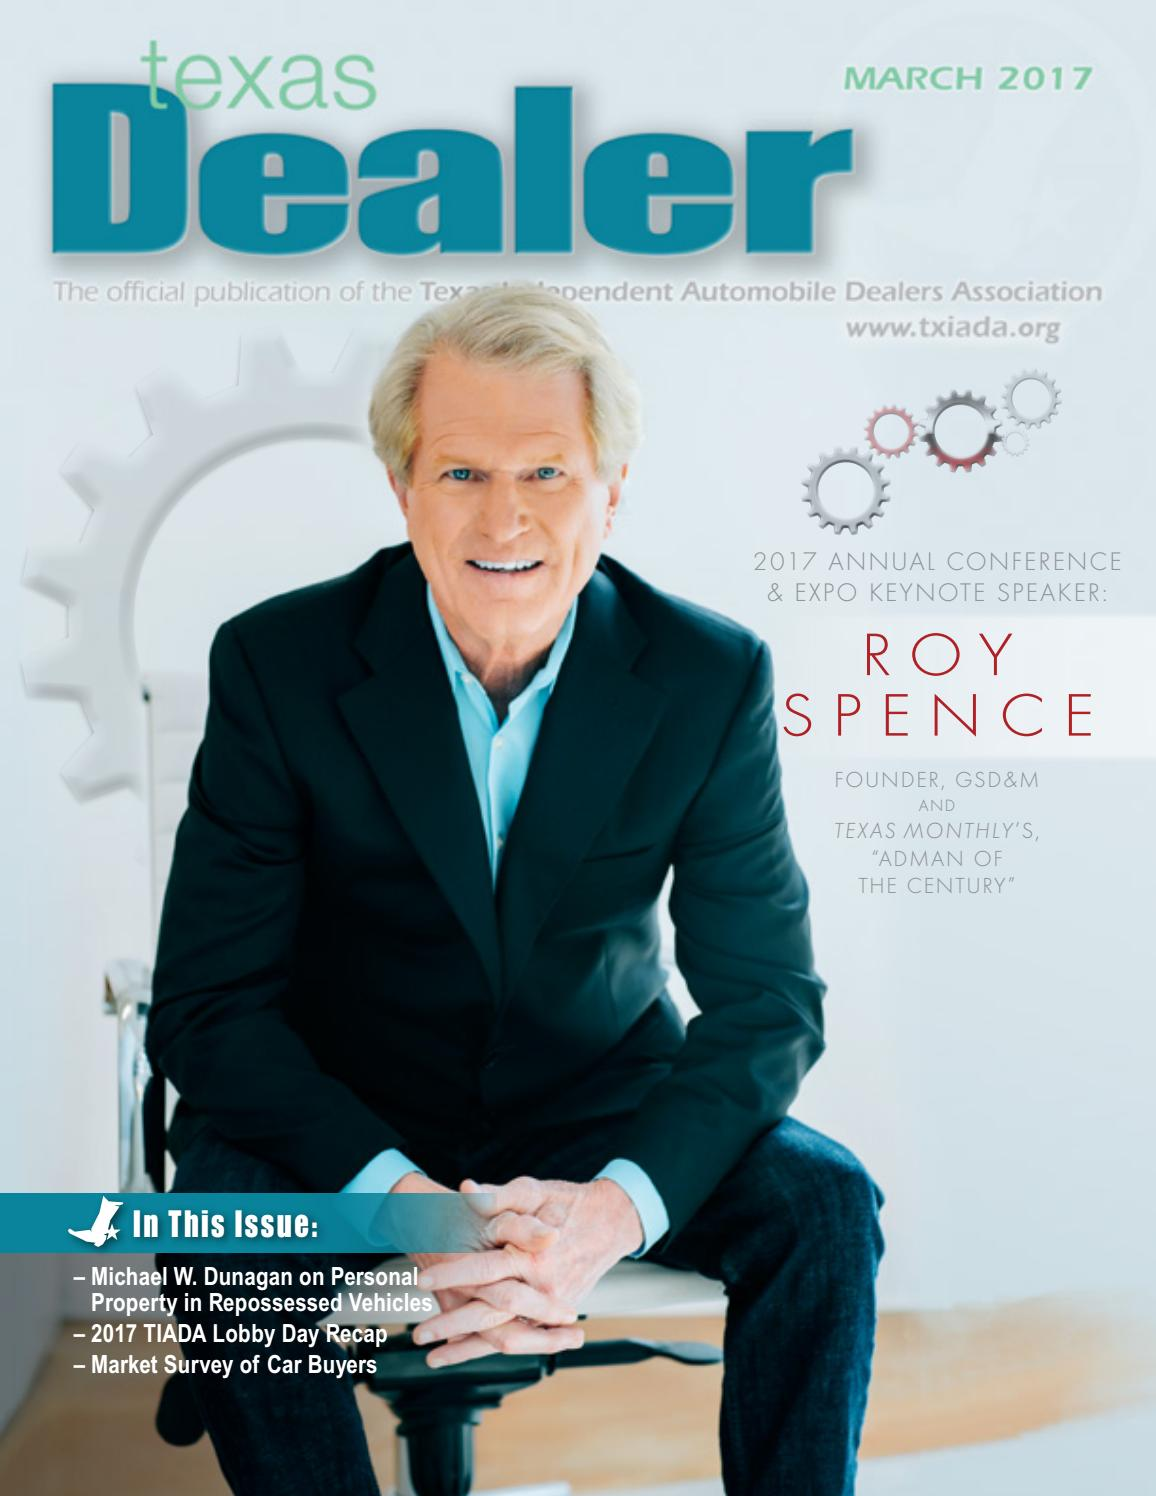 Texas Dealer March 2017 By Texas Independent Auto Dealers